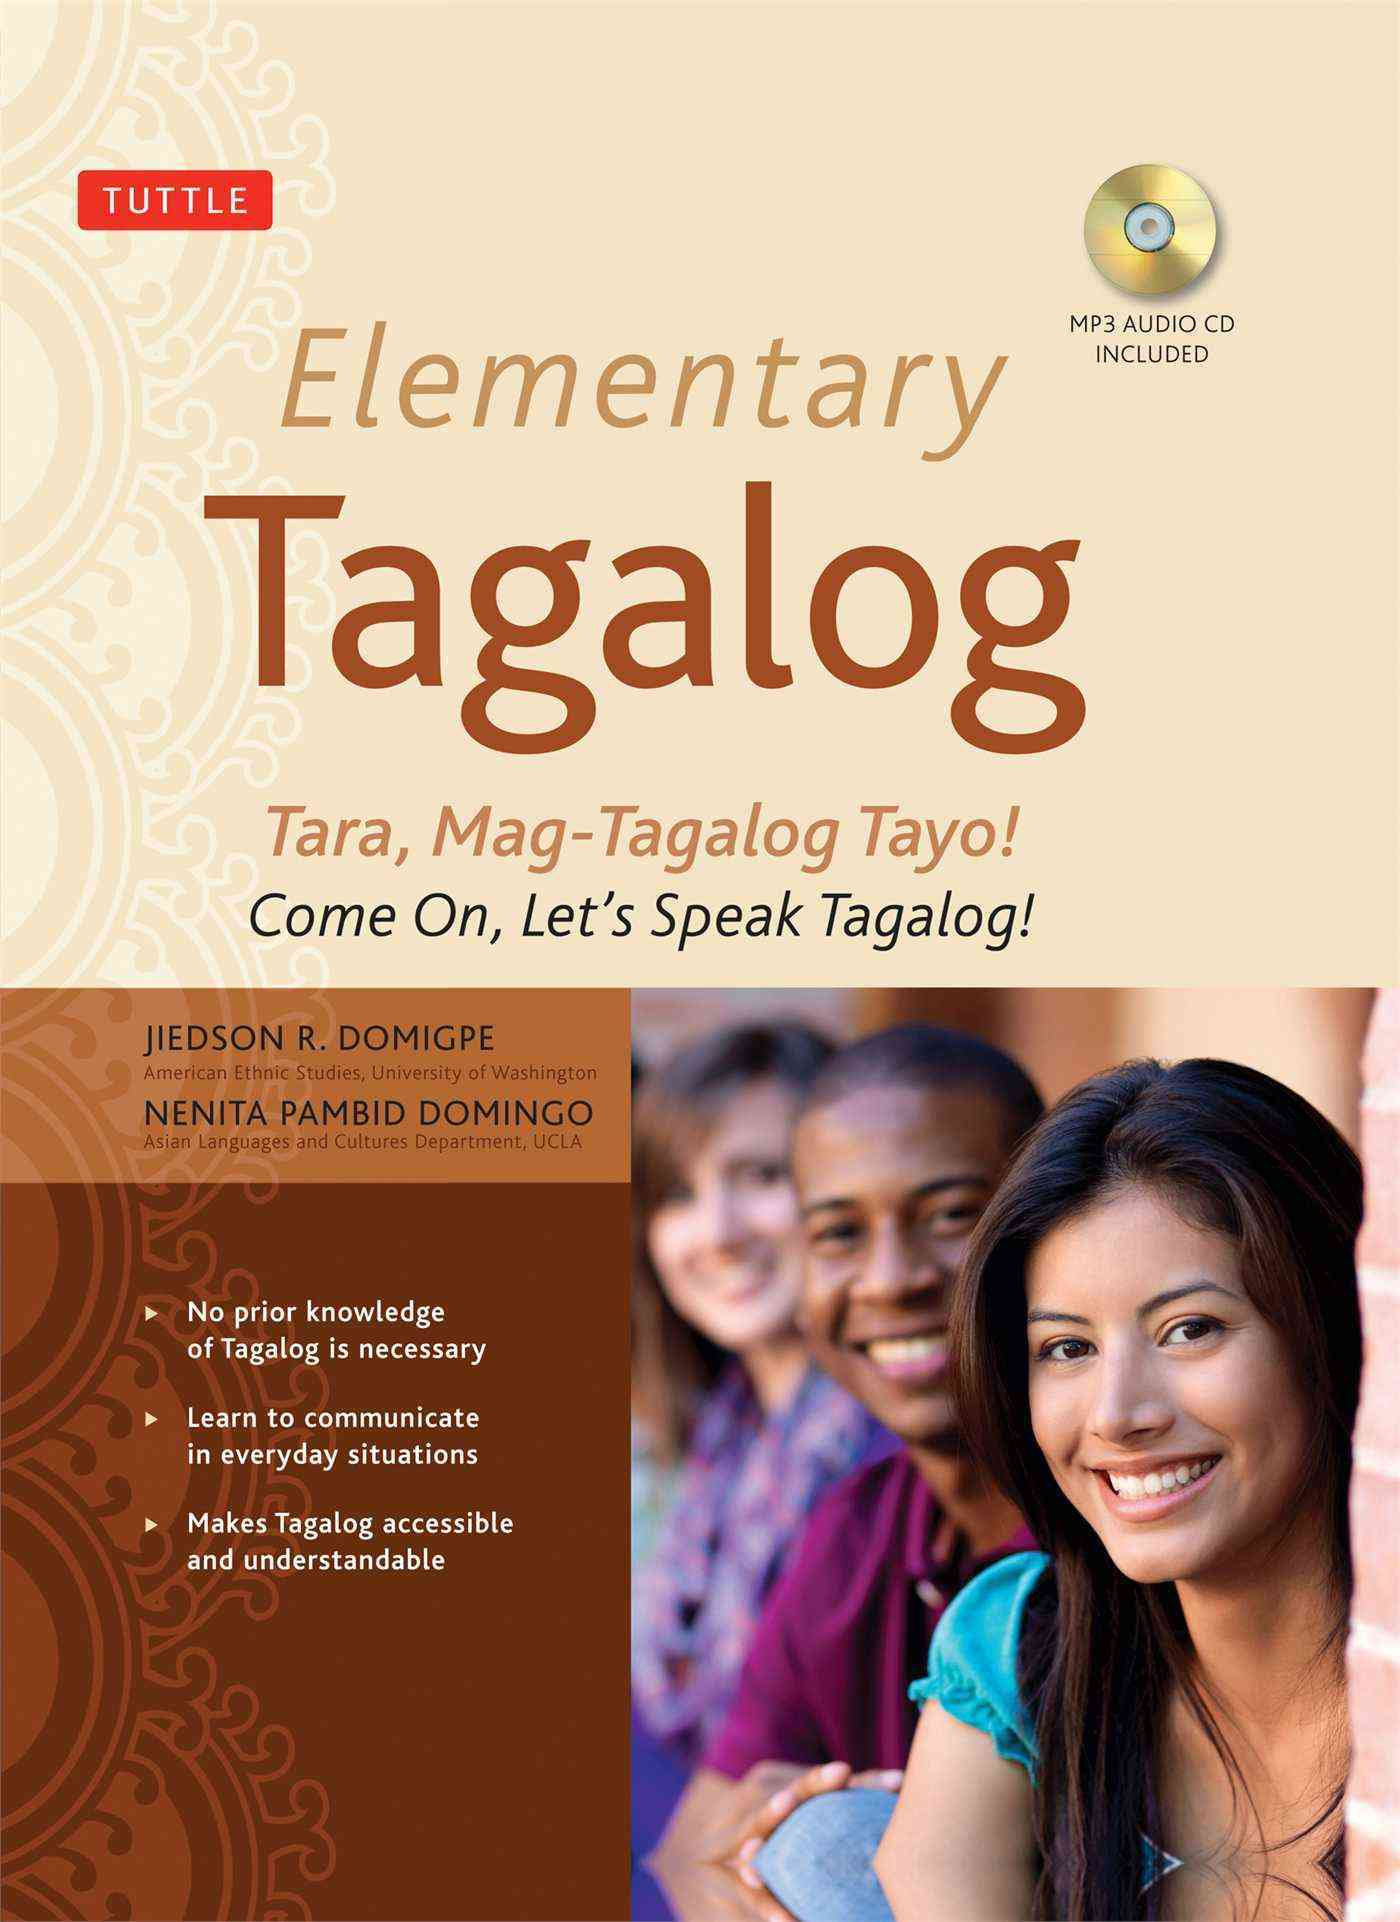 Elementary Tagalog By Domigpe, Jiedson R./ Domingo, Nenita Pambid (CON)